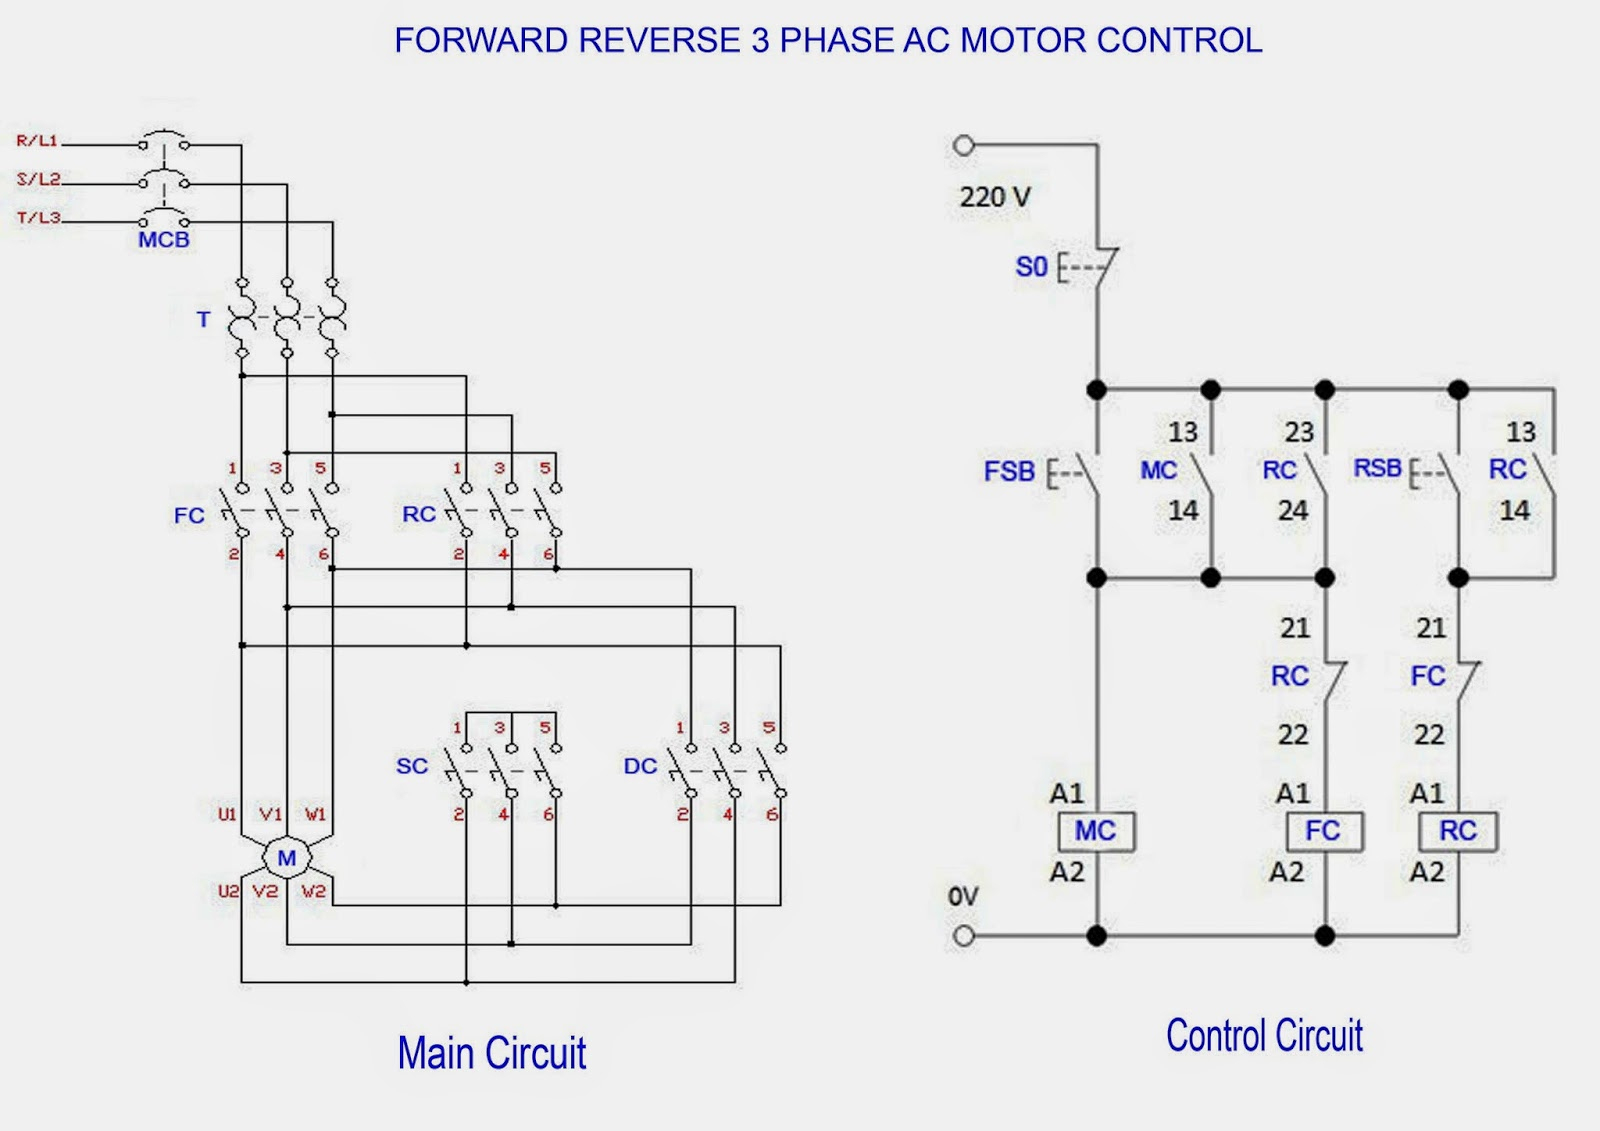 Wiring Diagram Forward - Wiring Diagram Detailed - Motor Starter Wiring Diagram